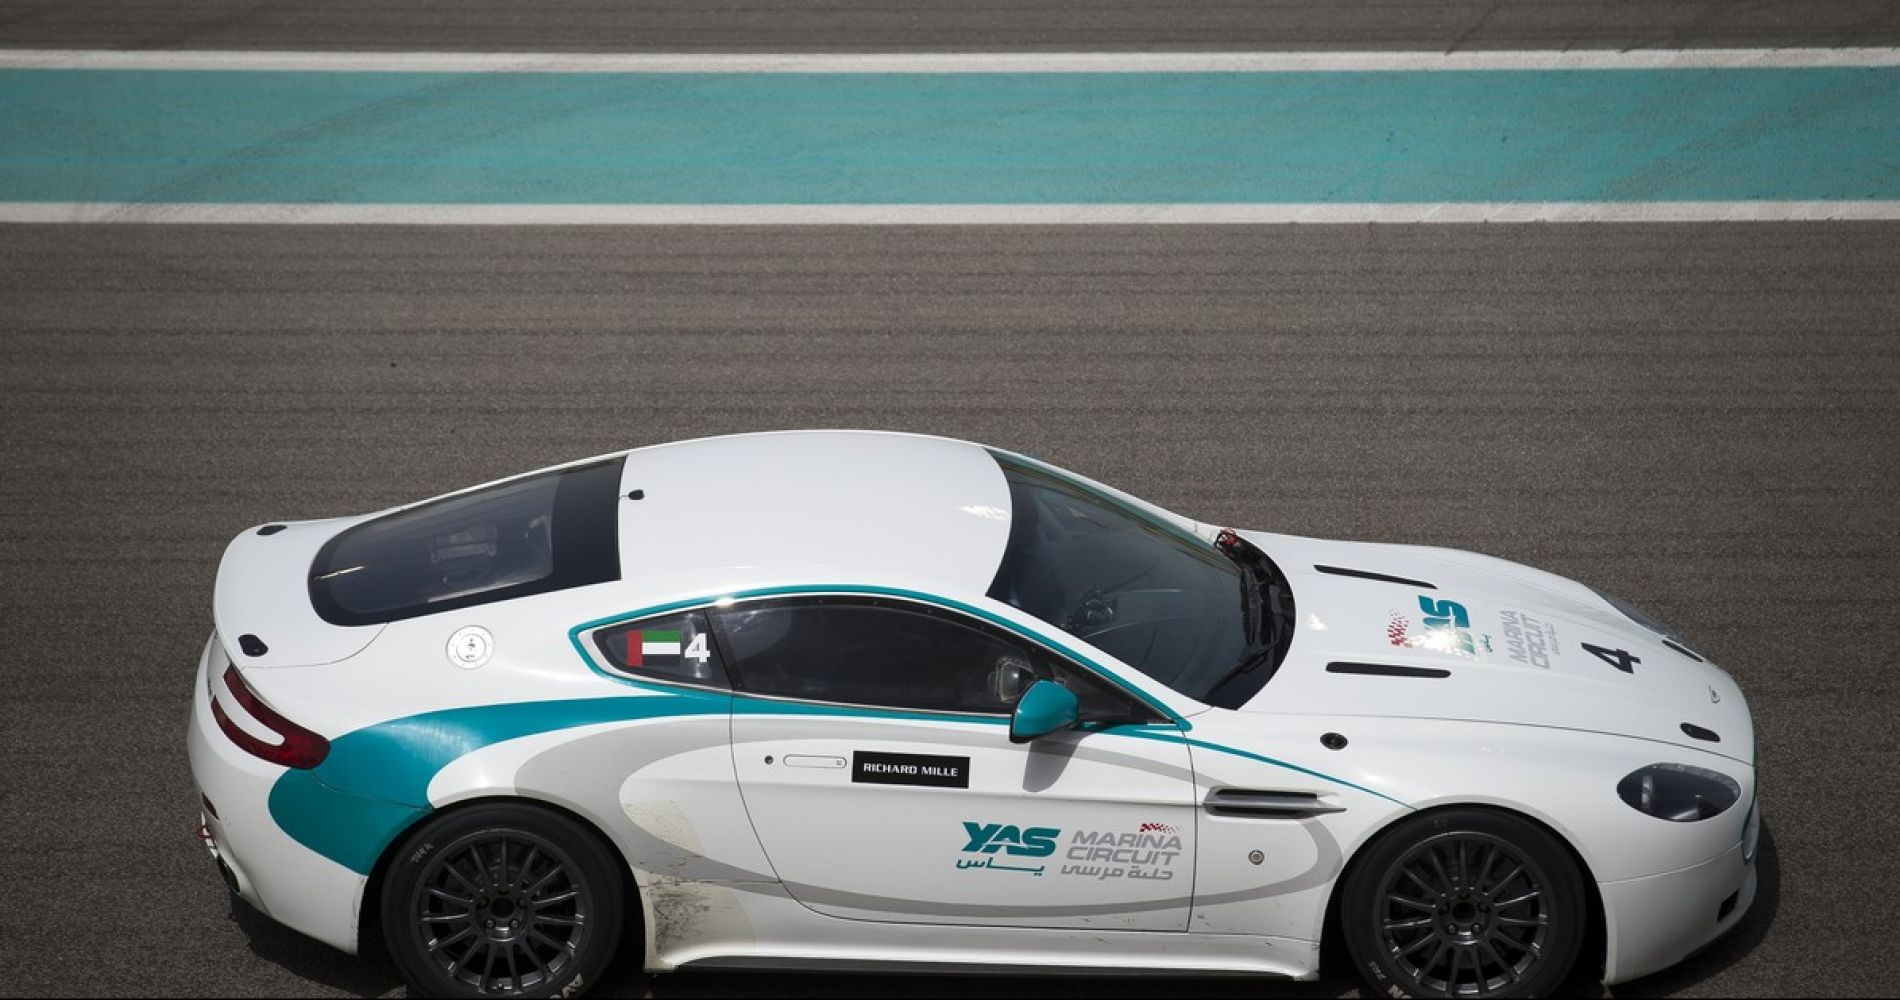 Aston Martin GT4 Passenger experience for Two